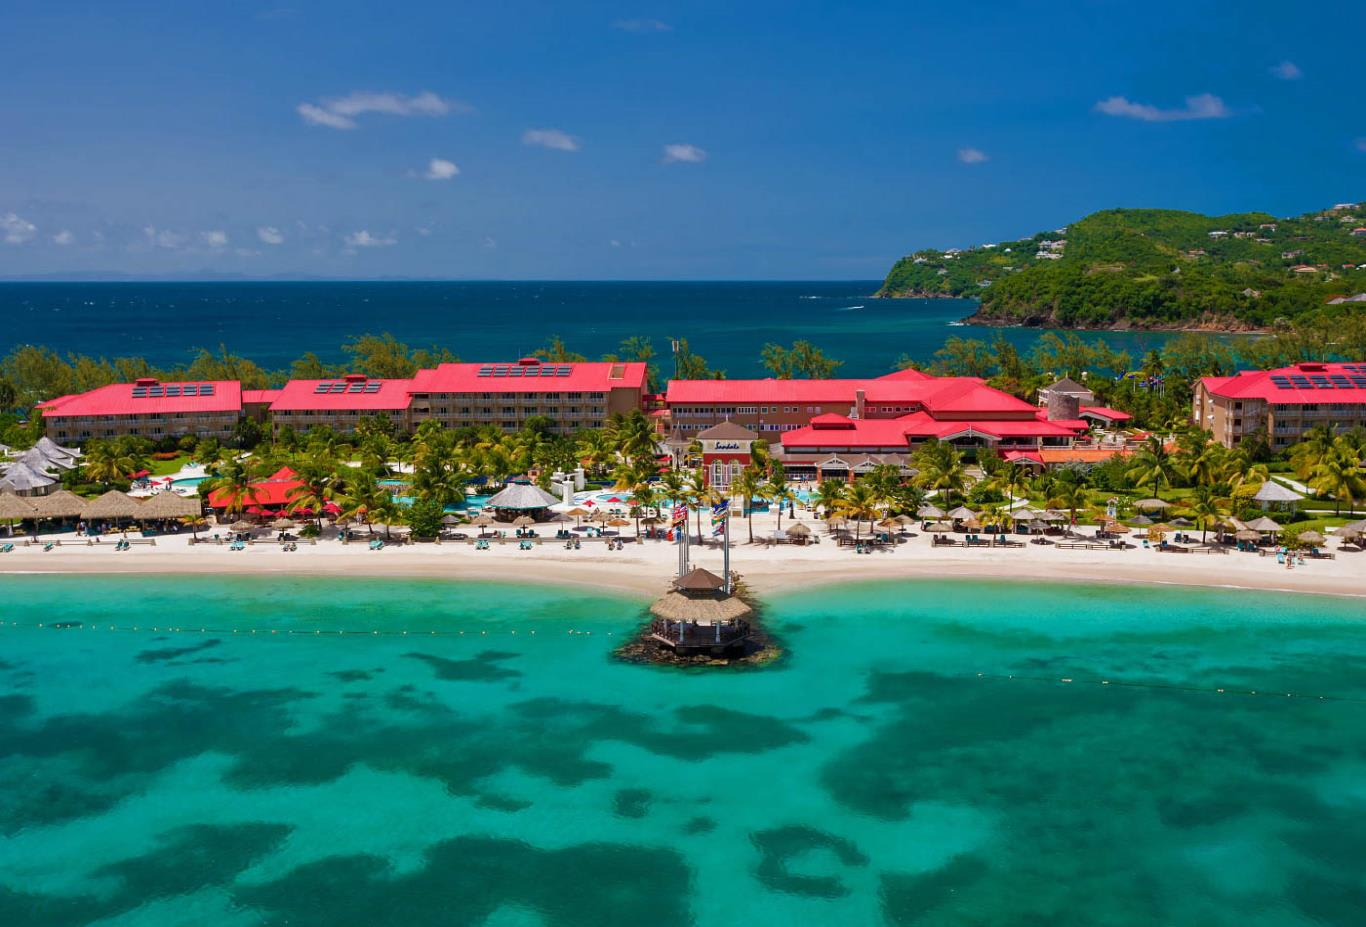 2222225f7783 Sandals Grande St Lucian Spa And Beach Resort. Destinology Recommended.  Aerial View